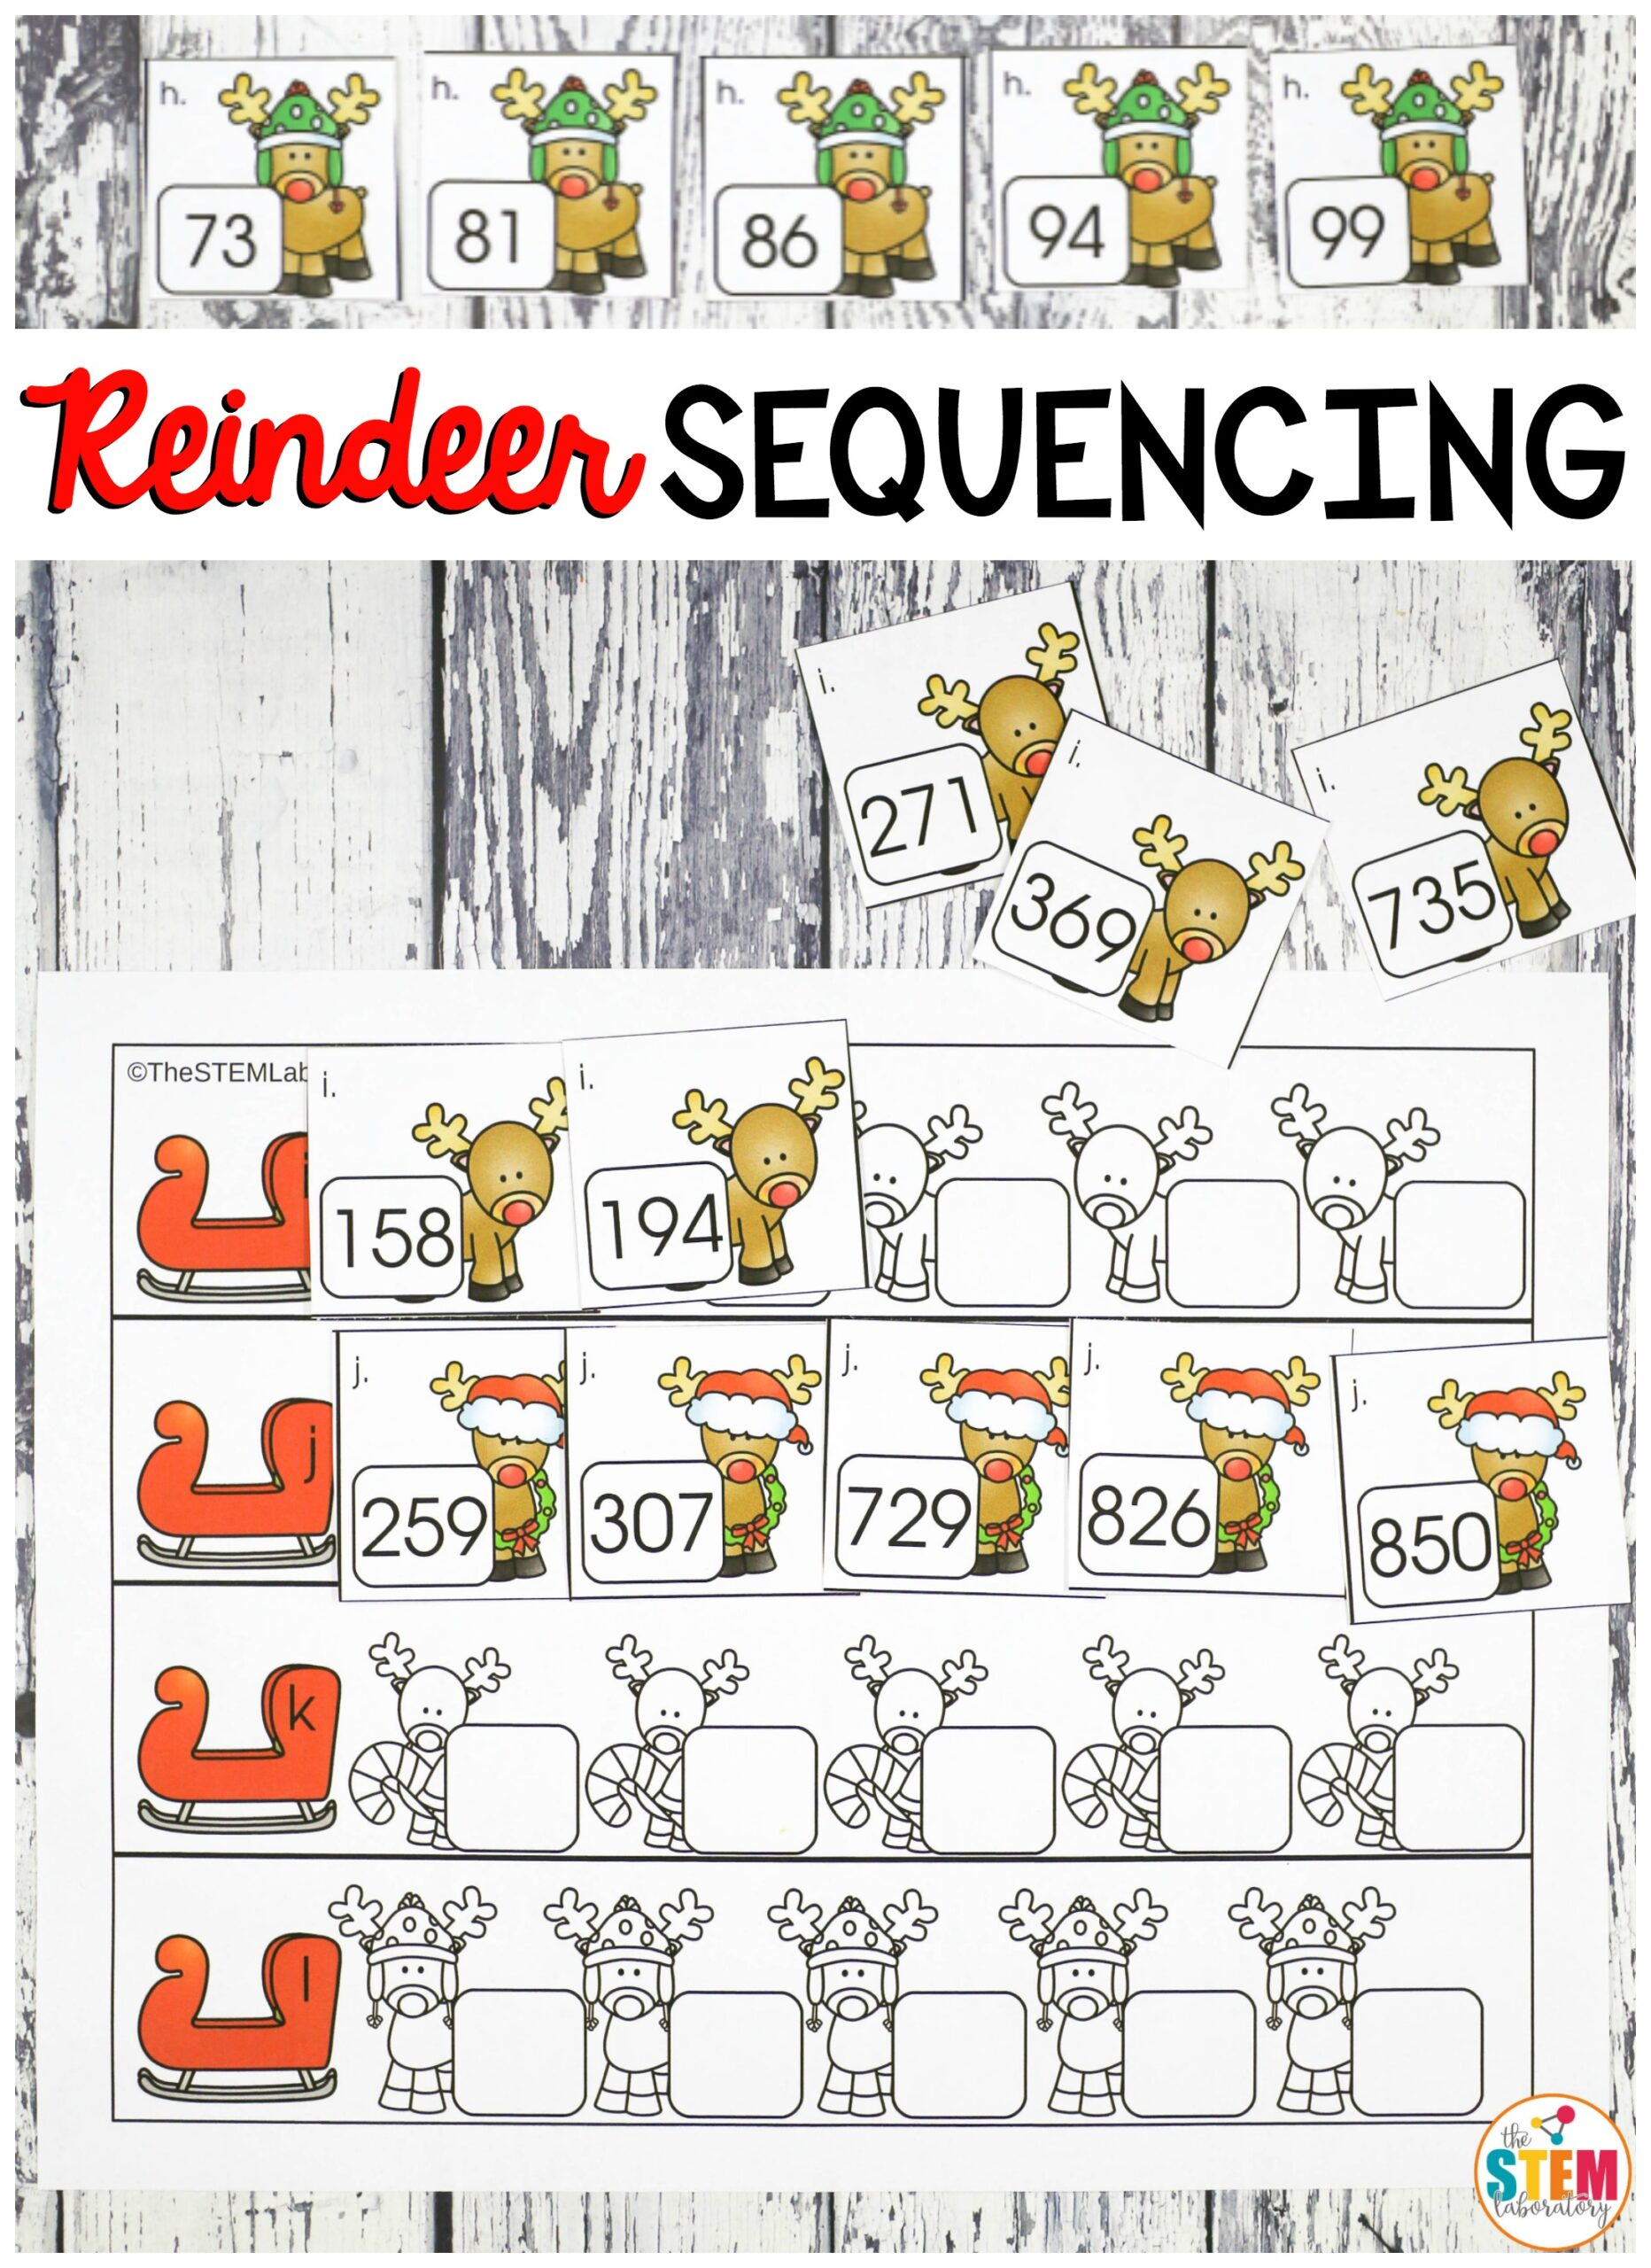 Reindeer Sequencing